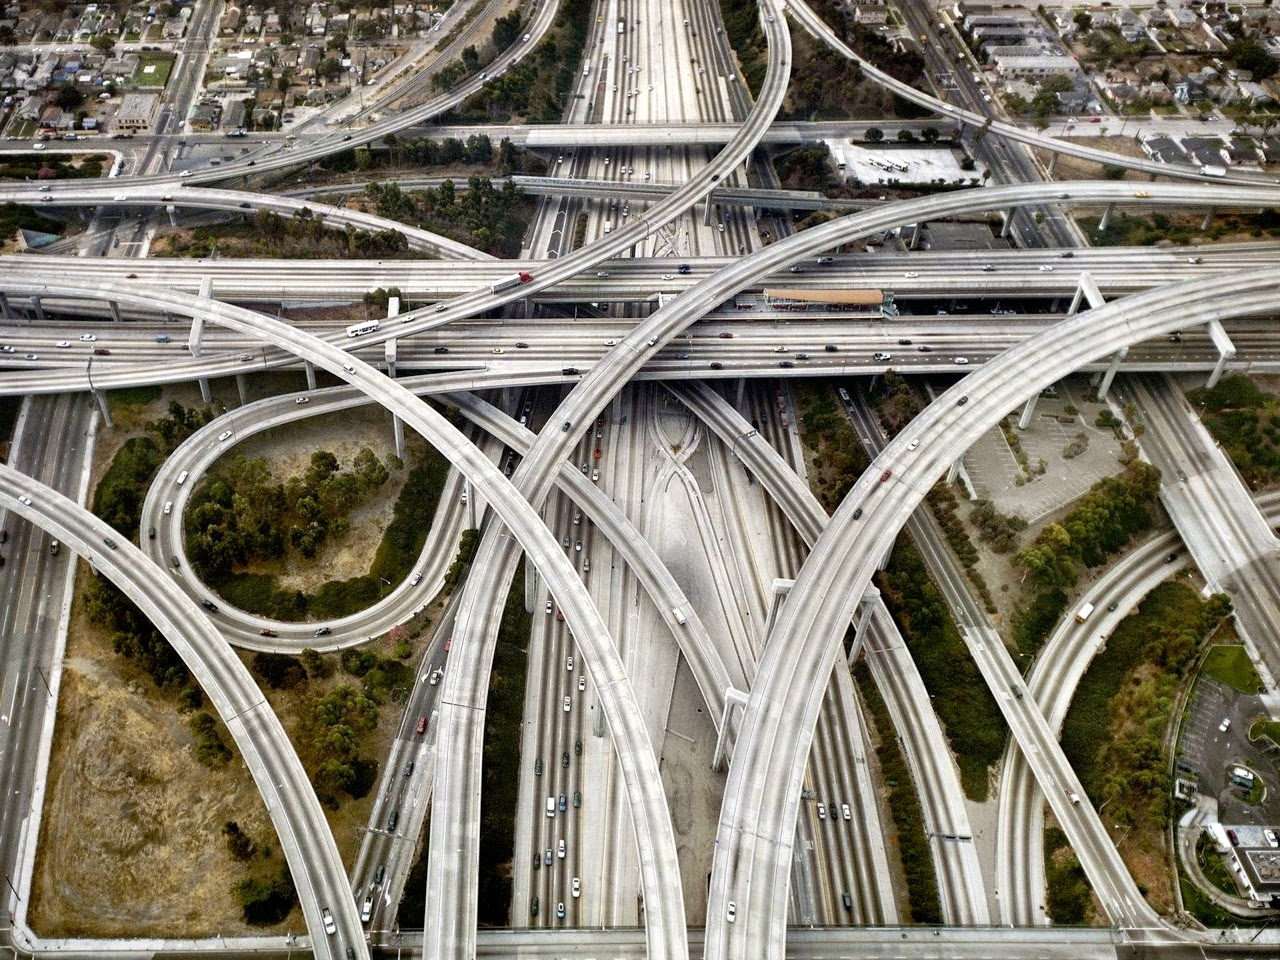 giant interchange, harbor freeway, 61 artesia freeway, Los Angeles, California, traffic